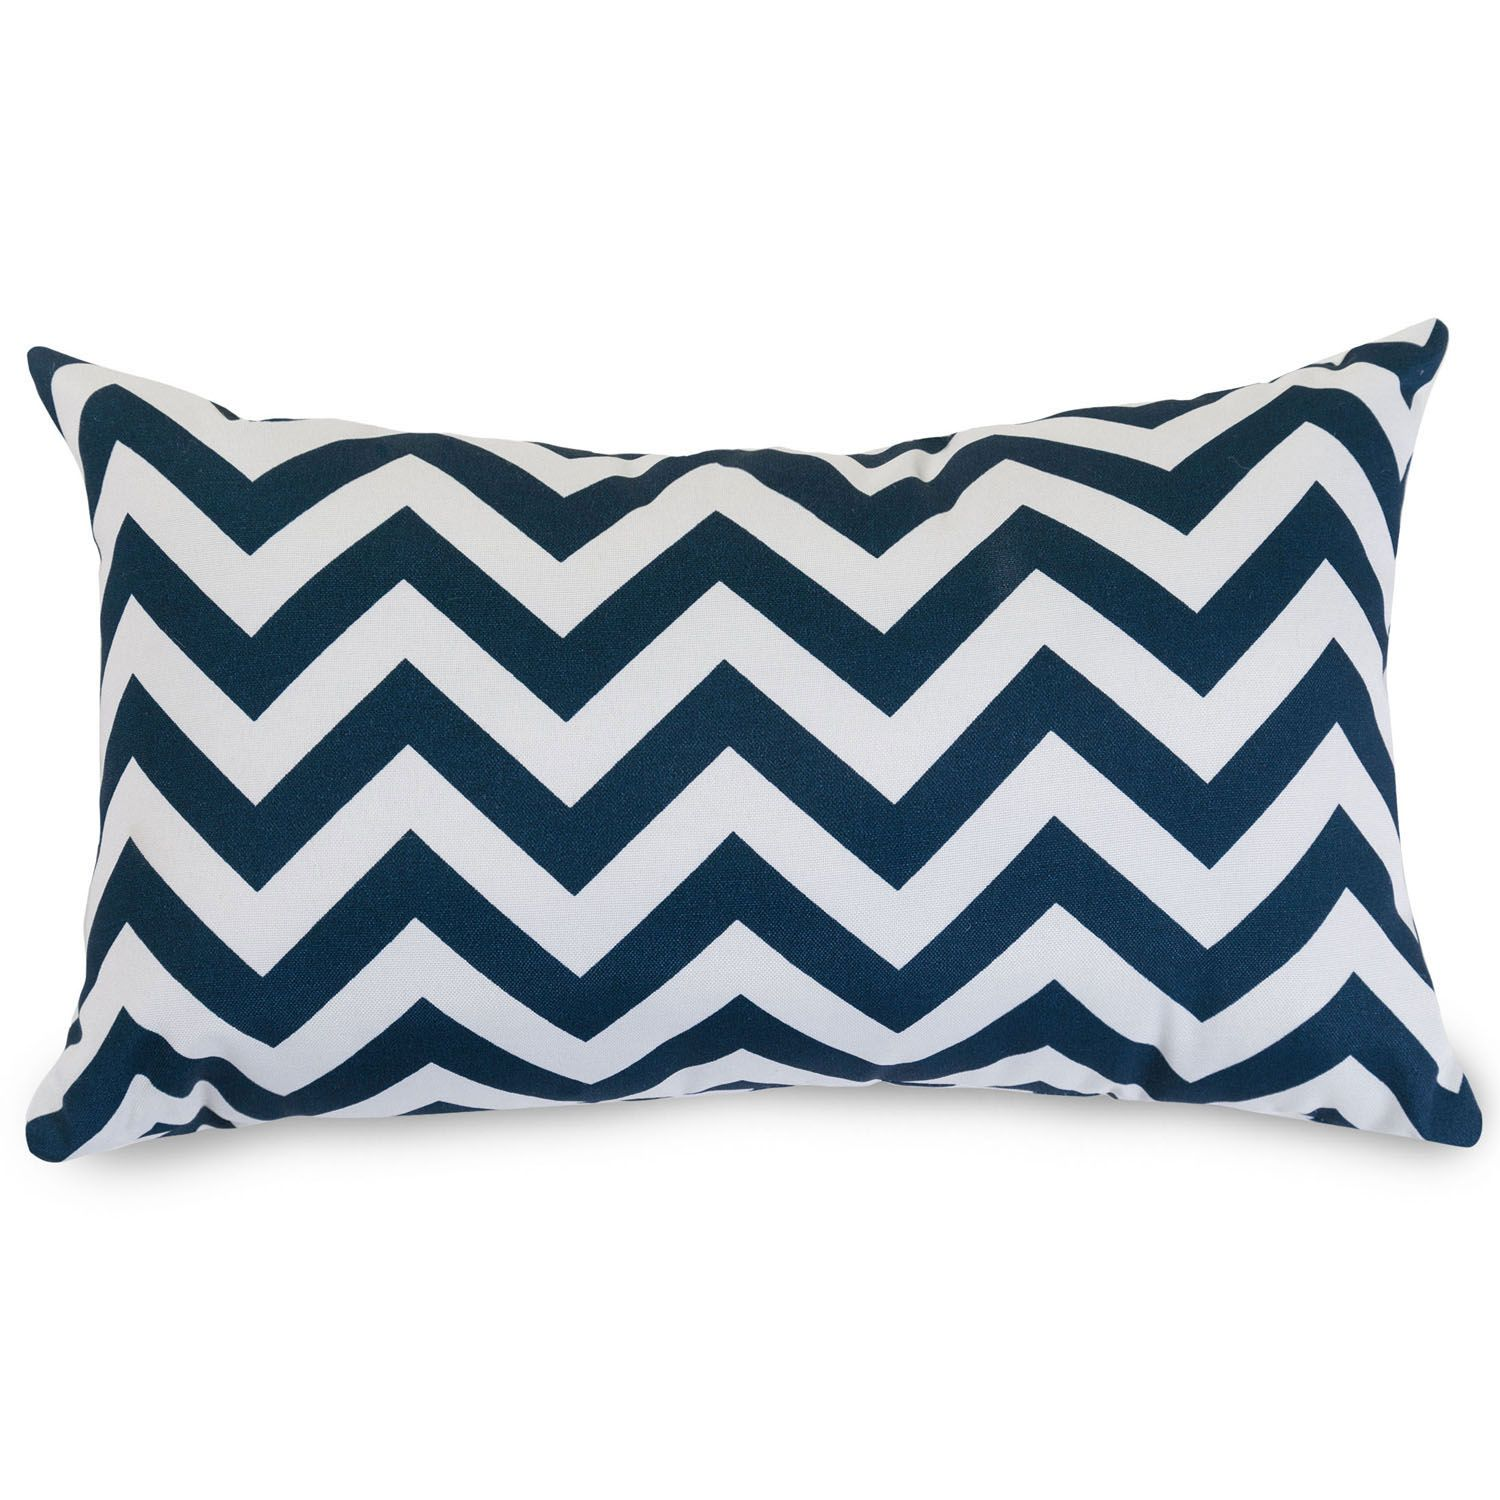 Home Goods Chevron Indoor Outdoor Small Decorative Pillow